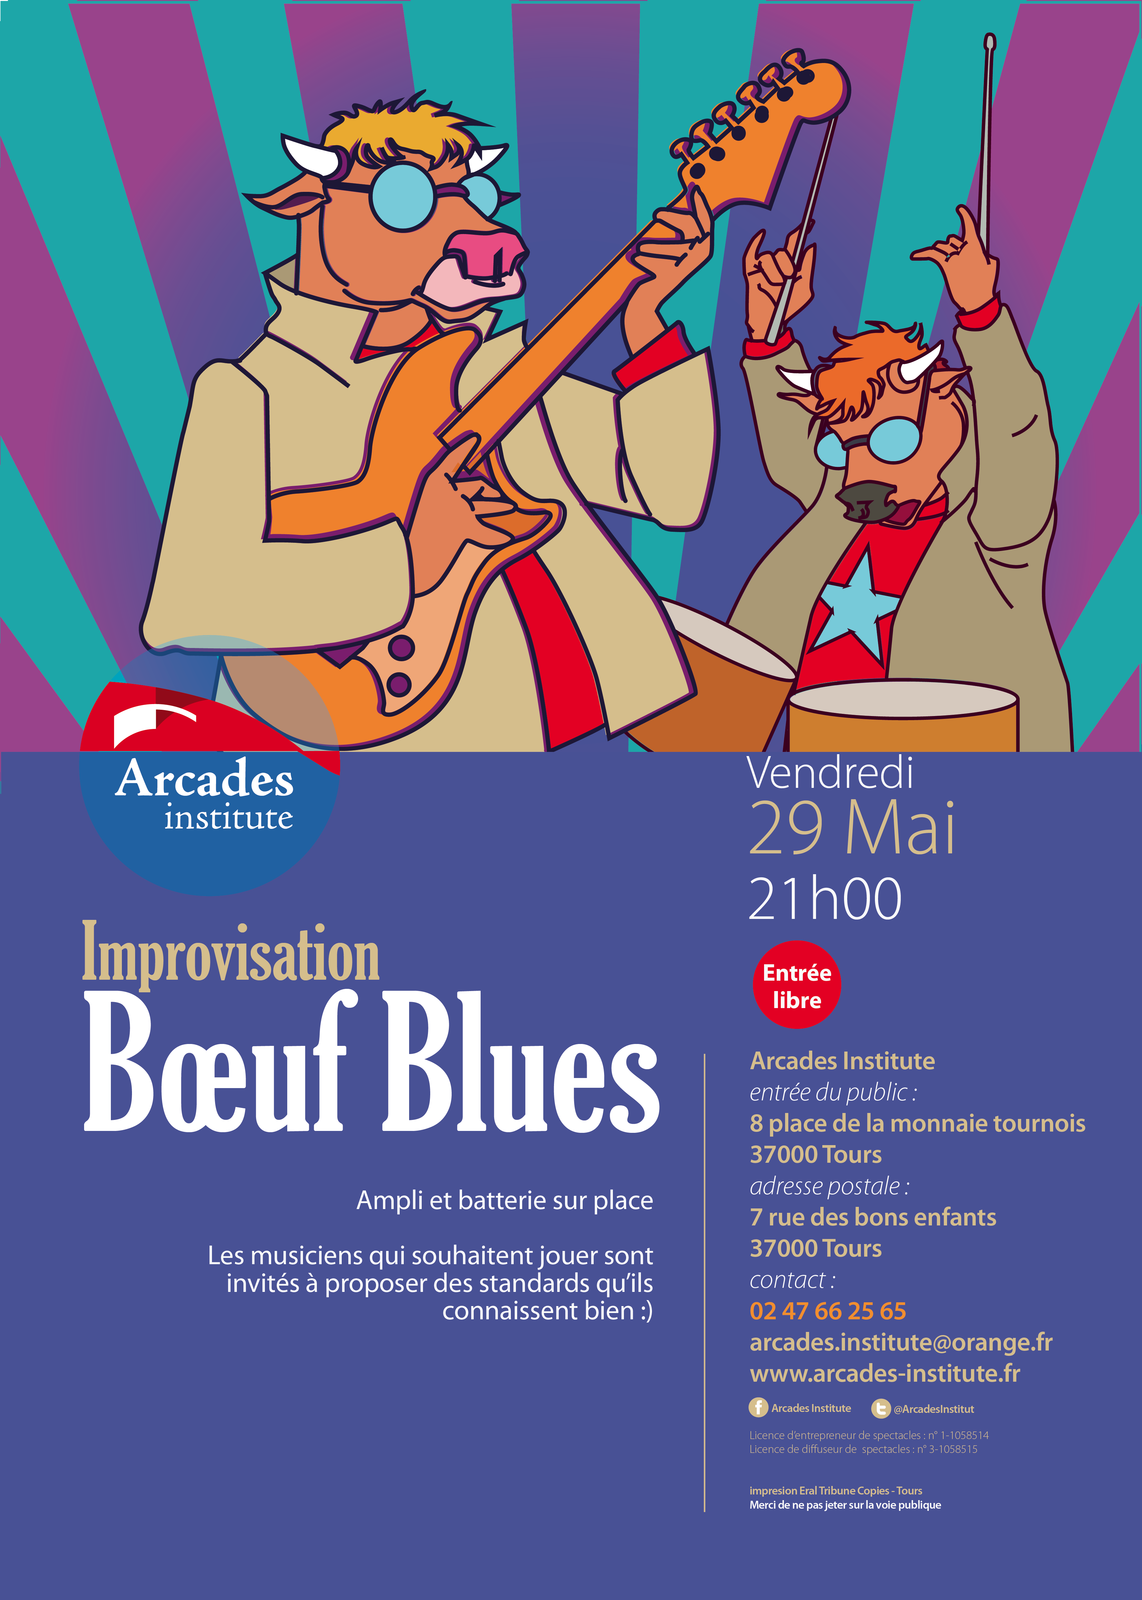 Vendredi 29 mai 21h ➔ Impro Bœuf blues